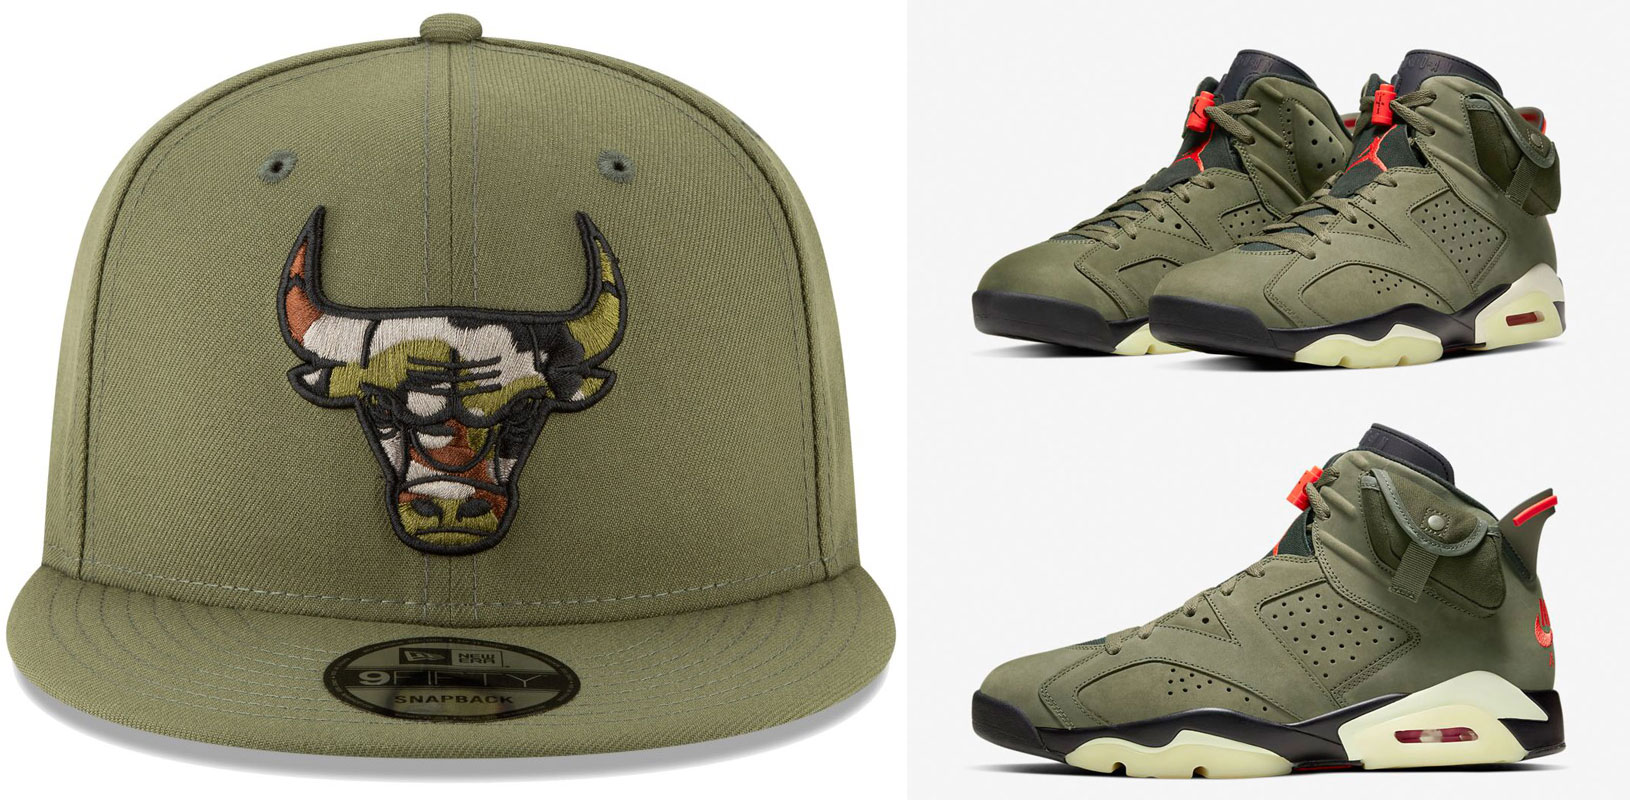 travis-scott-air-jordan-6-olive-bulls-matching-hat